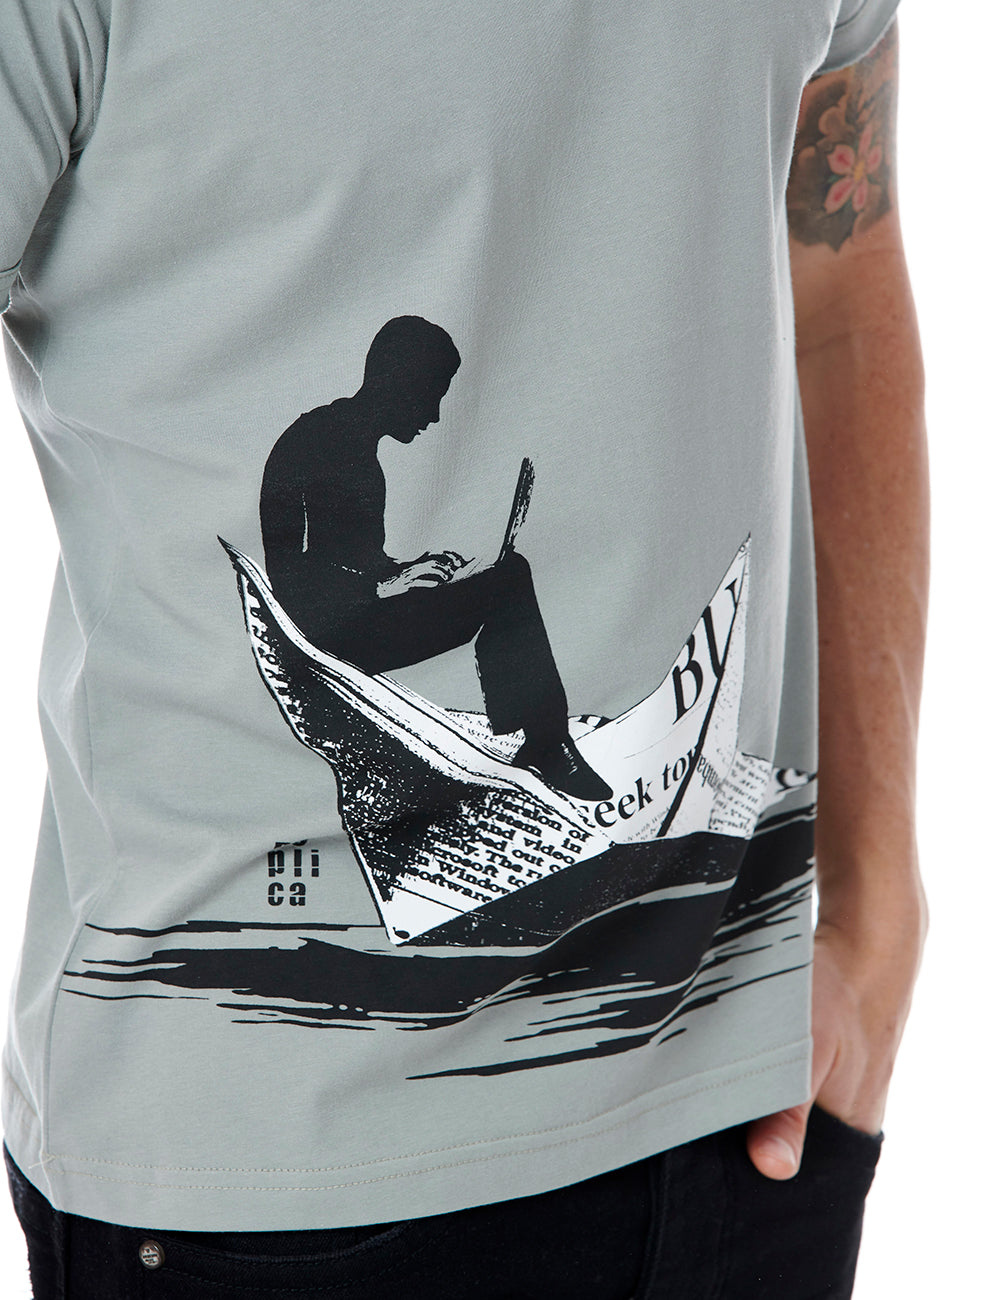 Boat tshirt Replica Greece grey